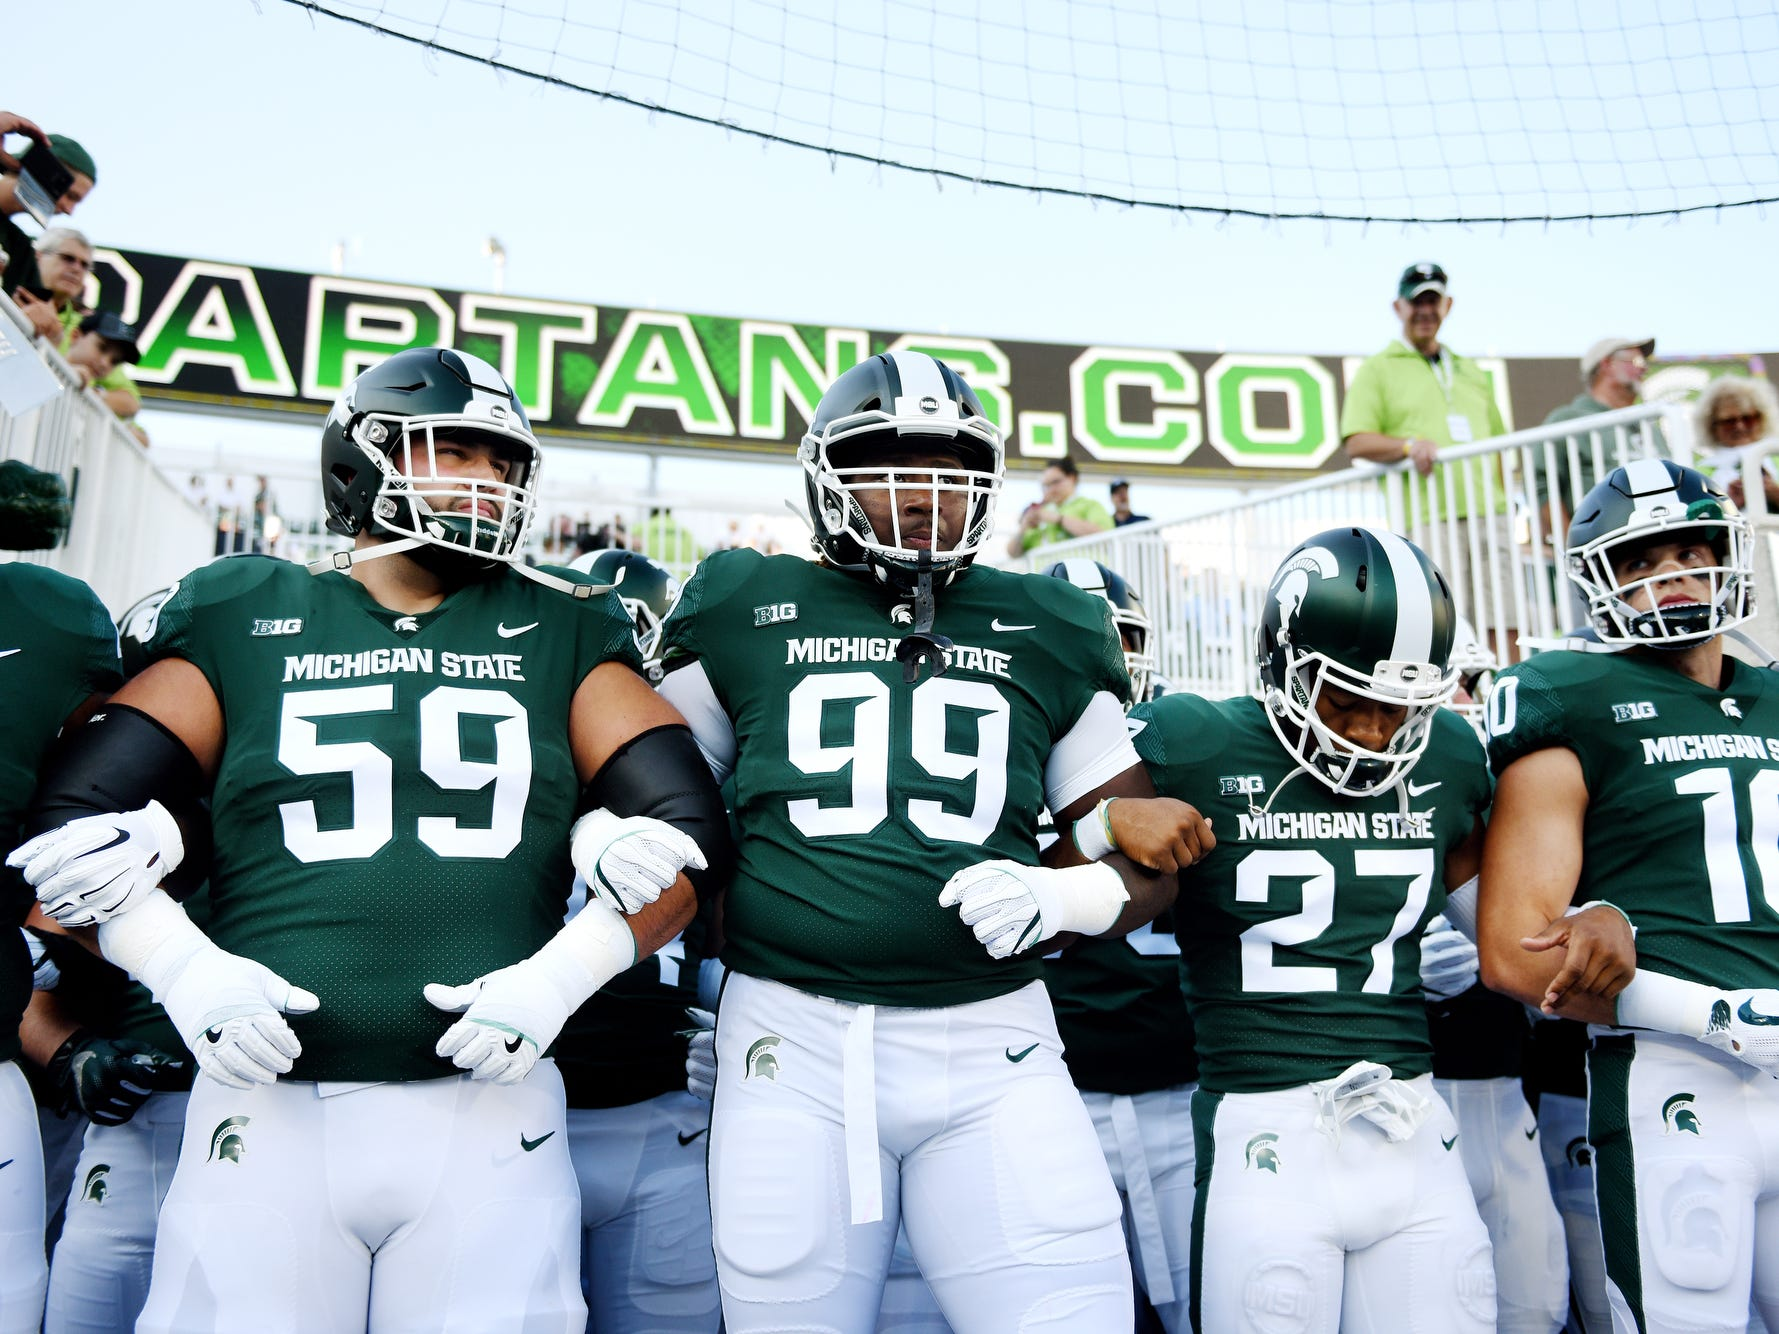 Michigan State players, from left, David Beedle, Raequan Williams, Khari Willis and Matt Morrissey lock arms before taking the field for warm ups before the Spartans' game against Utah State on Friday, Aug. 31, 2018, at Spartan Stadium in East Lansing.